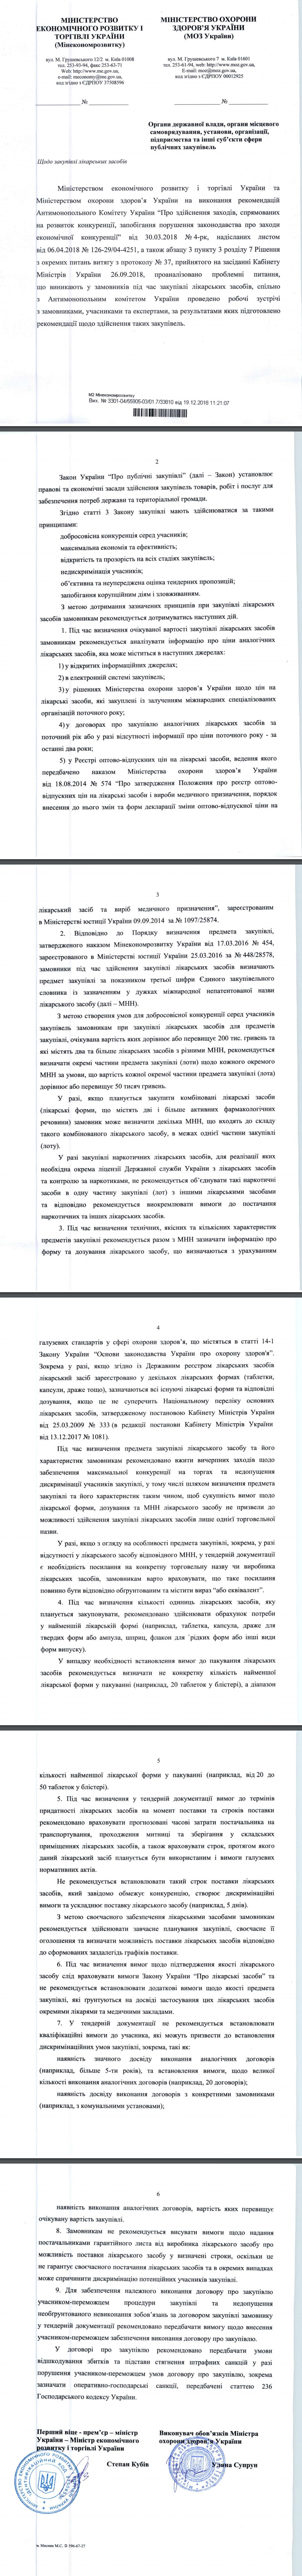 https://www.city.kharkov.ua/assets/files/docs/zakypki/3301-04_55905-03_01.7_33810-vd-19.12.2018.pdf